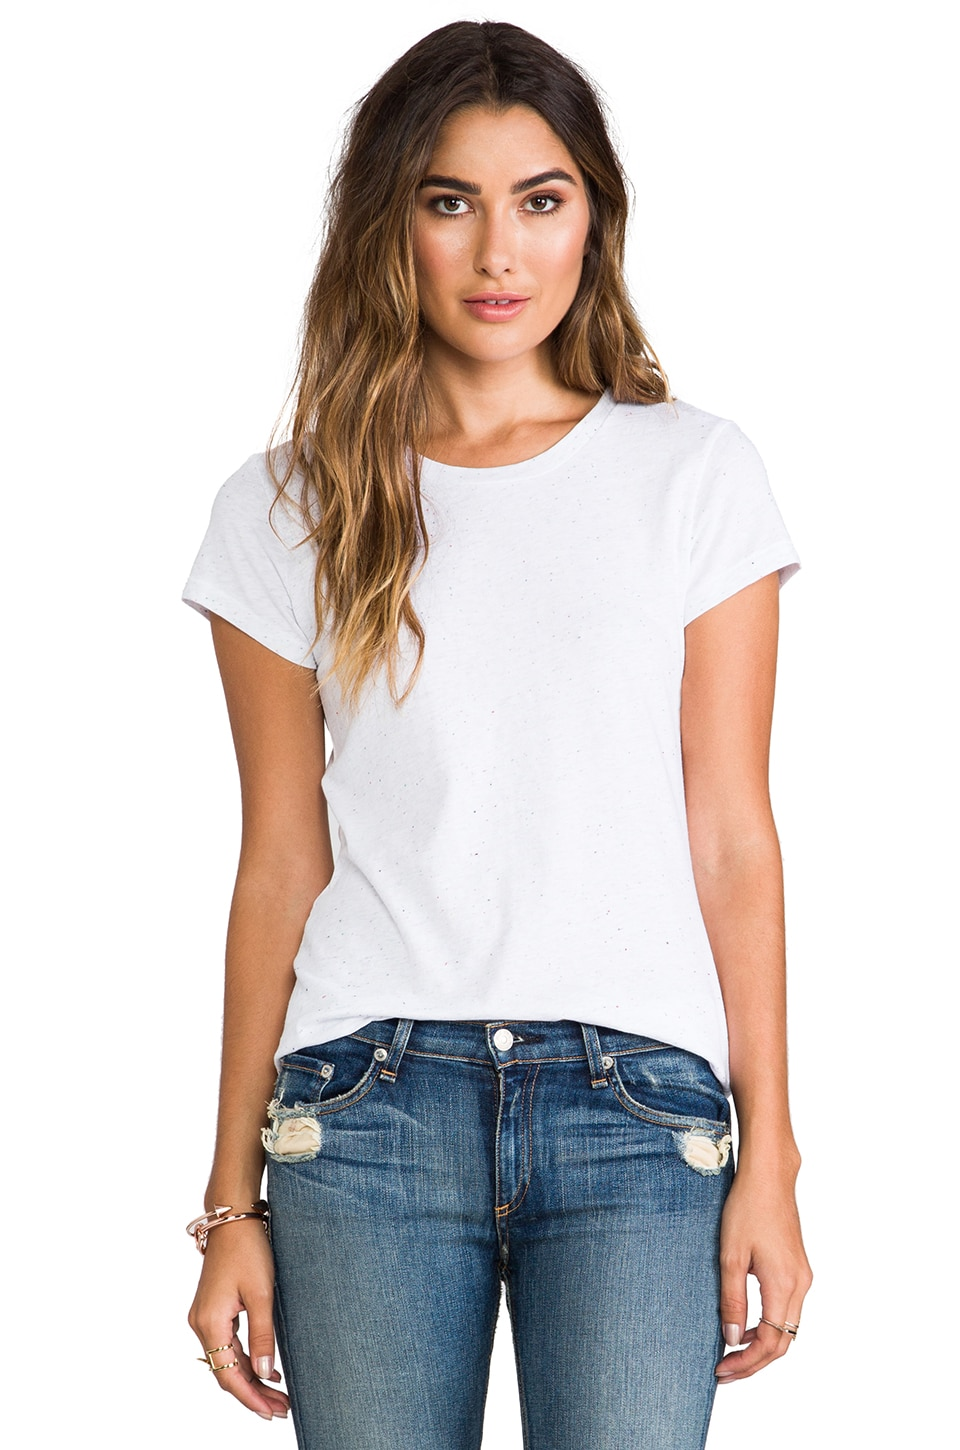 rag & bone/JEAN The Basic Brando Tee in Bright White